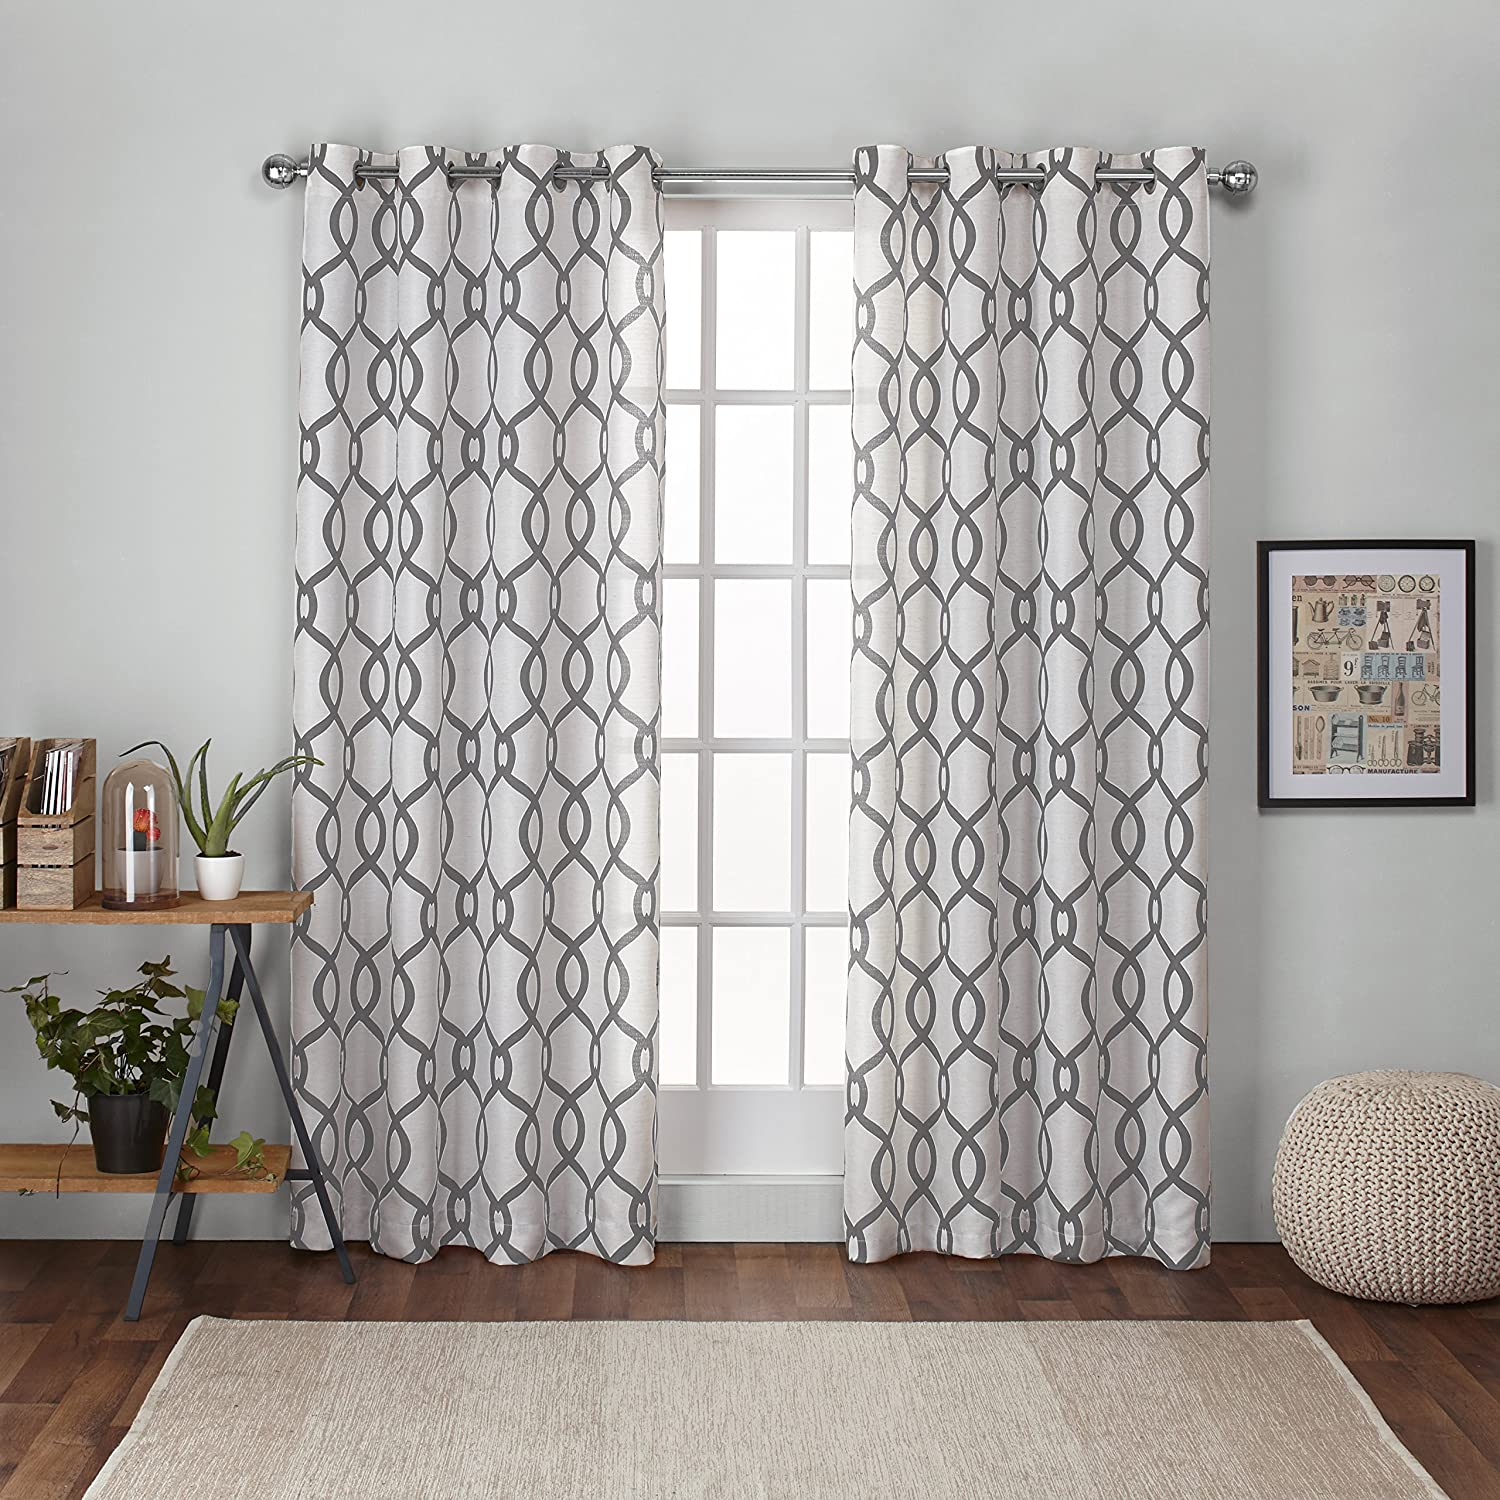 Exclusive Home Curtains Kochi Linen Blend Grommet Top Curtain Panel Pair, 54x96, Black Pearl, 2 Count